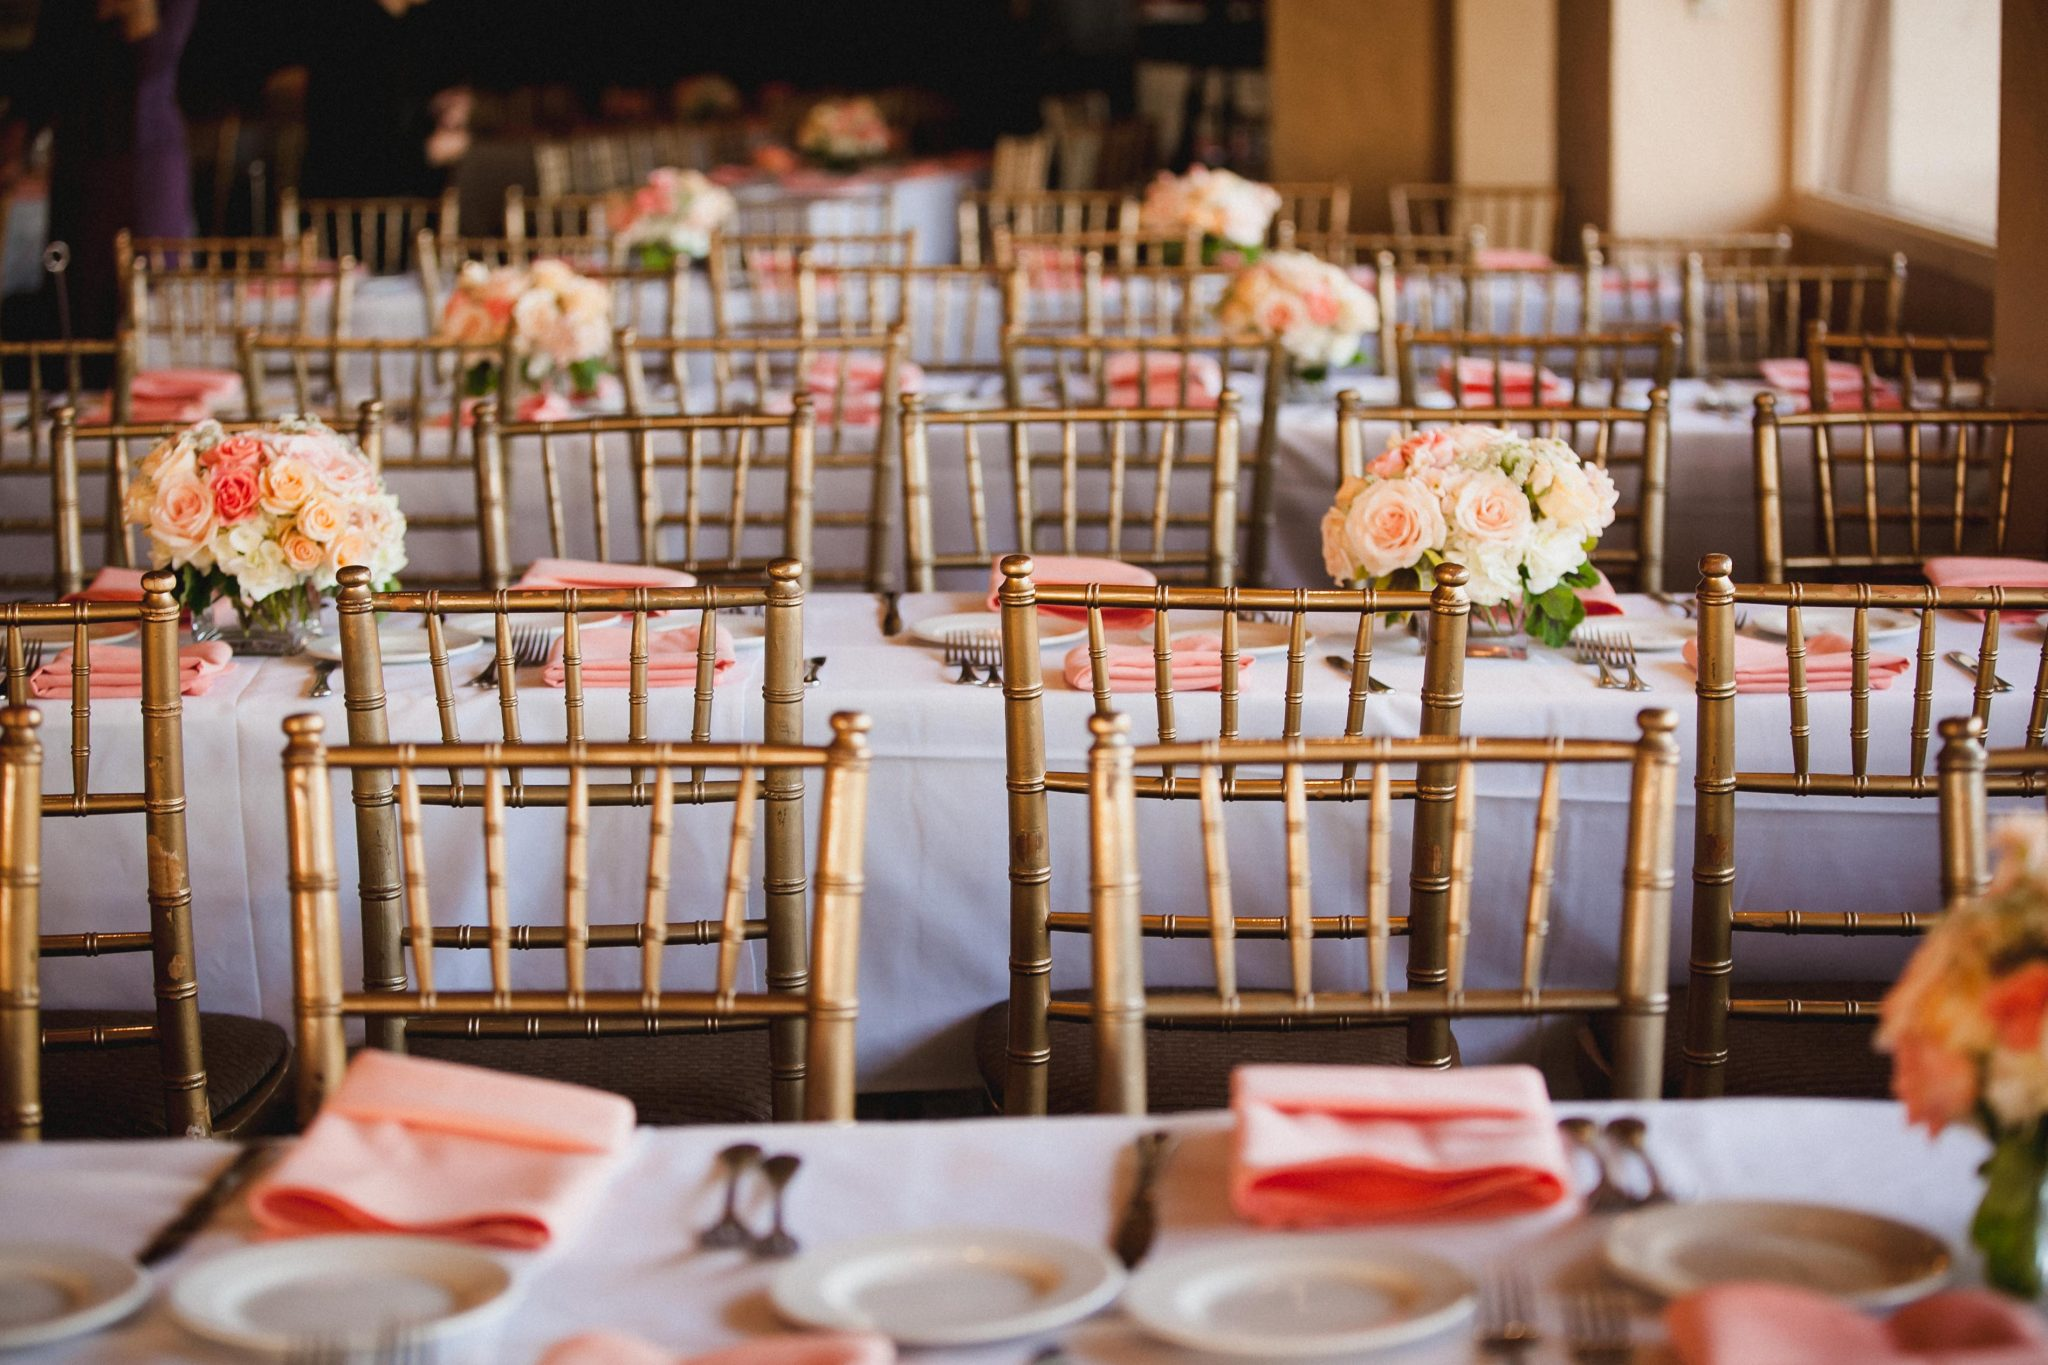 Gold chairs for guests to sit on at a wedding reception at Tom Ham's Lighthouse